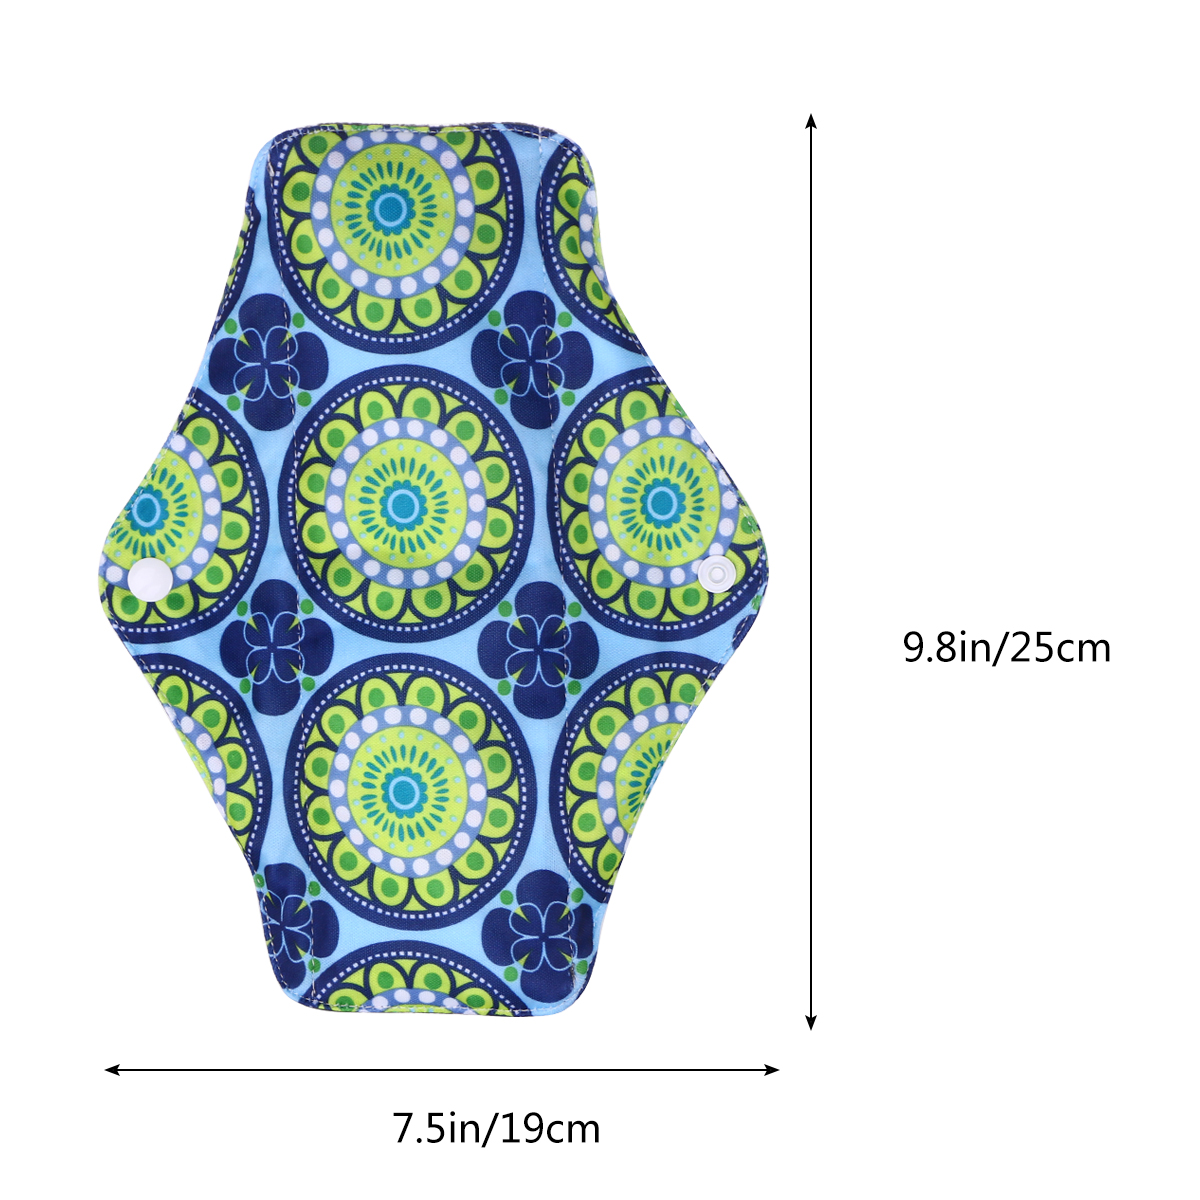 1 Pcs Menstrual Pad Reusable Breathable Portable Washable Polyester Menstrual Pad Sanitary Towel for Women Girls Ladies in Feminine Hygiene Product from Beauty Health